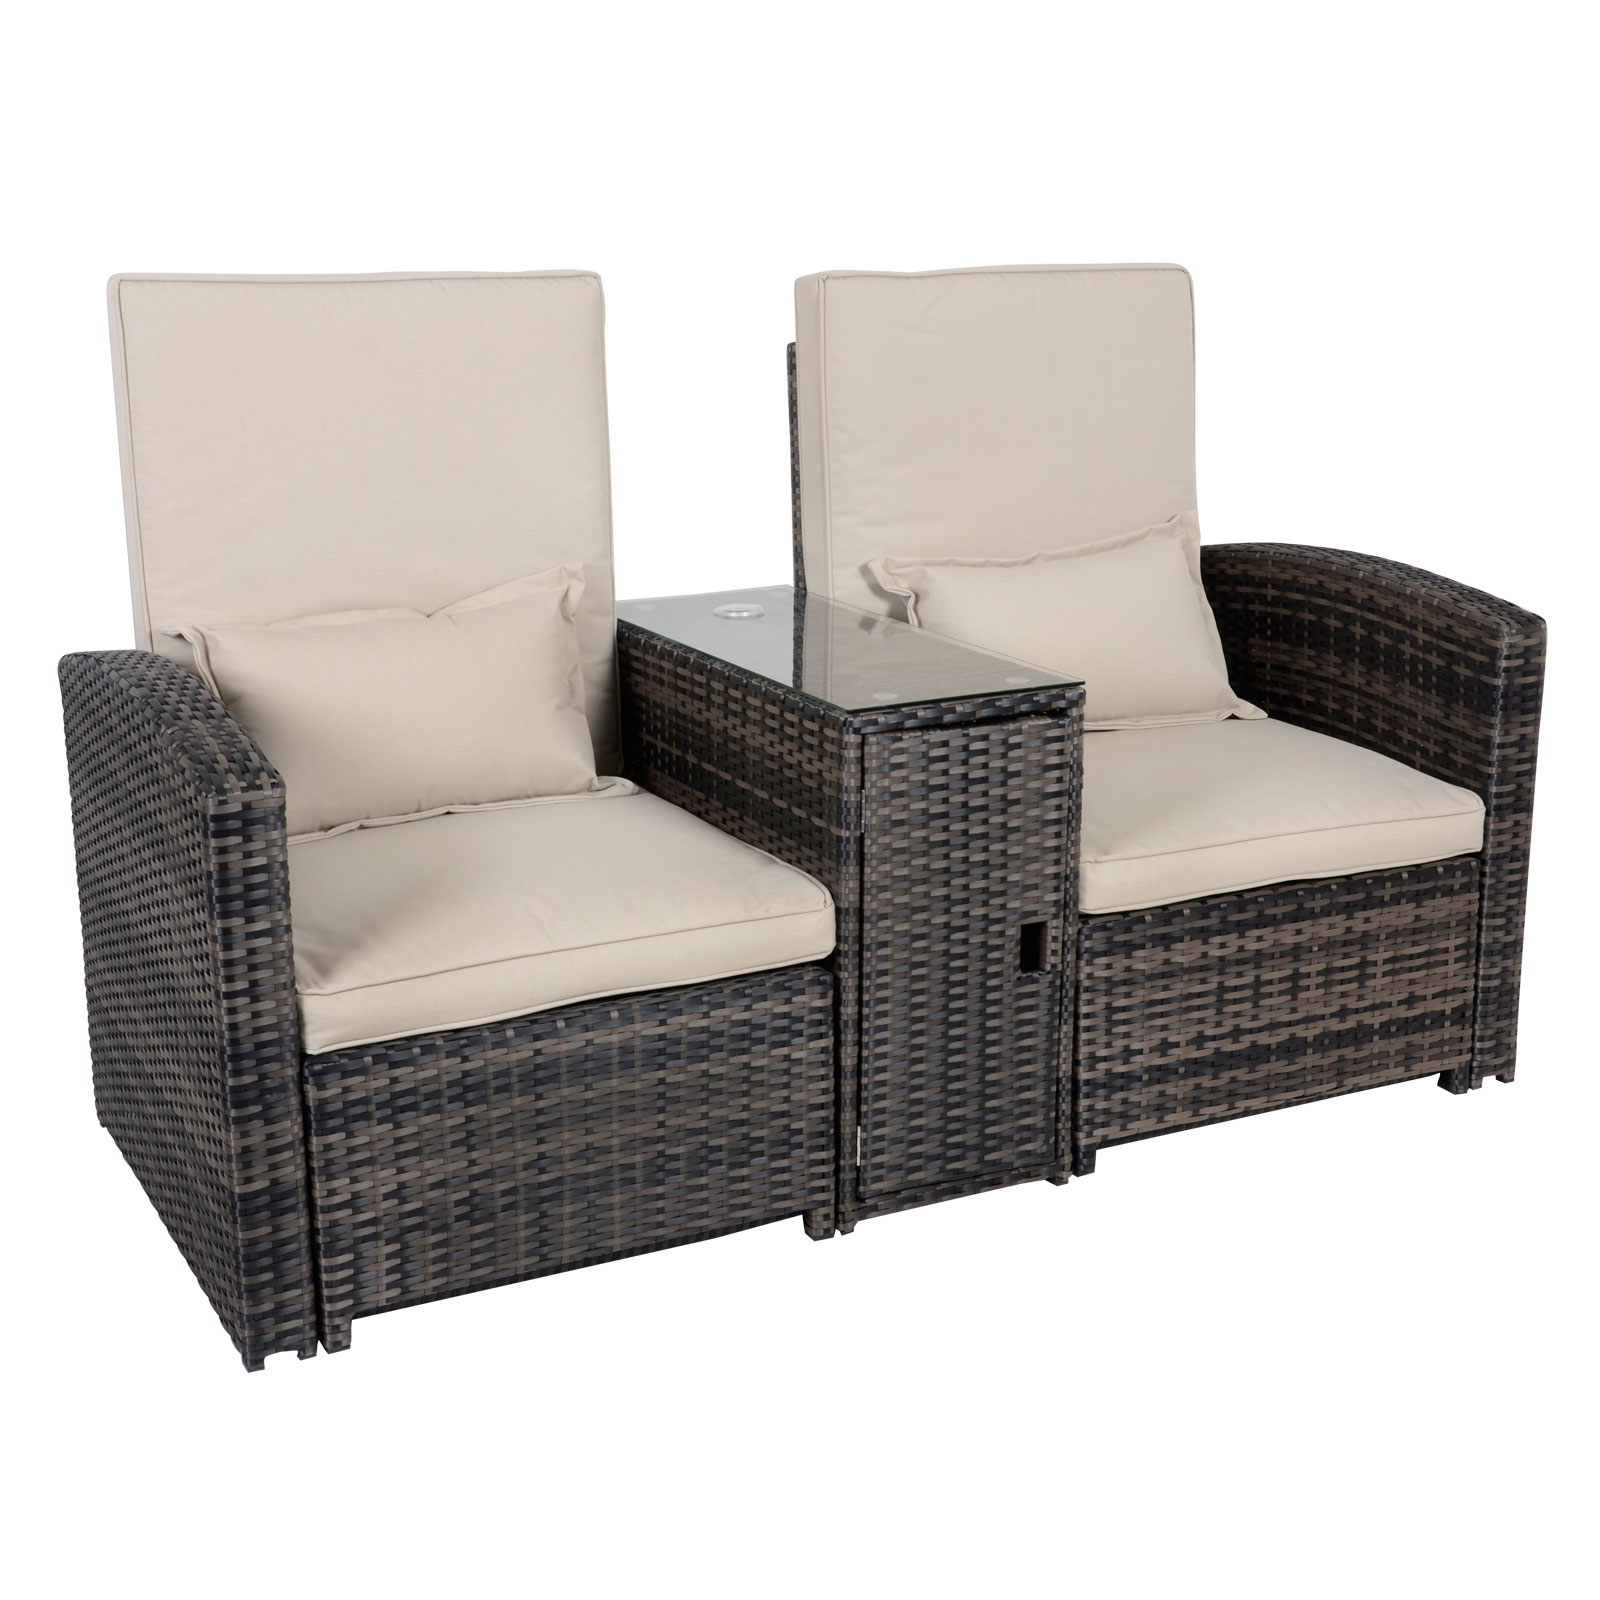 antigua rattan wicker reclining sun lounger companion chair garden furniture set ebay. Black Bedroom Furniture Sets. Home Design Ideas